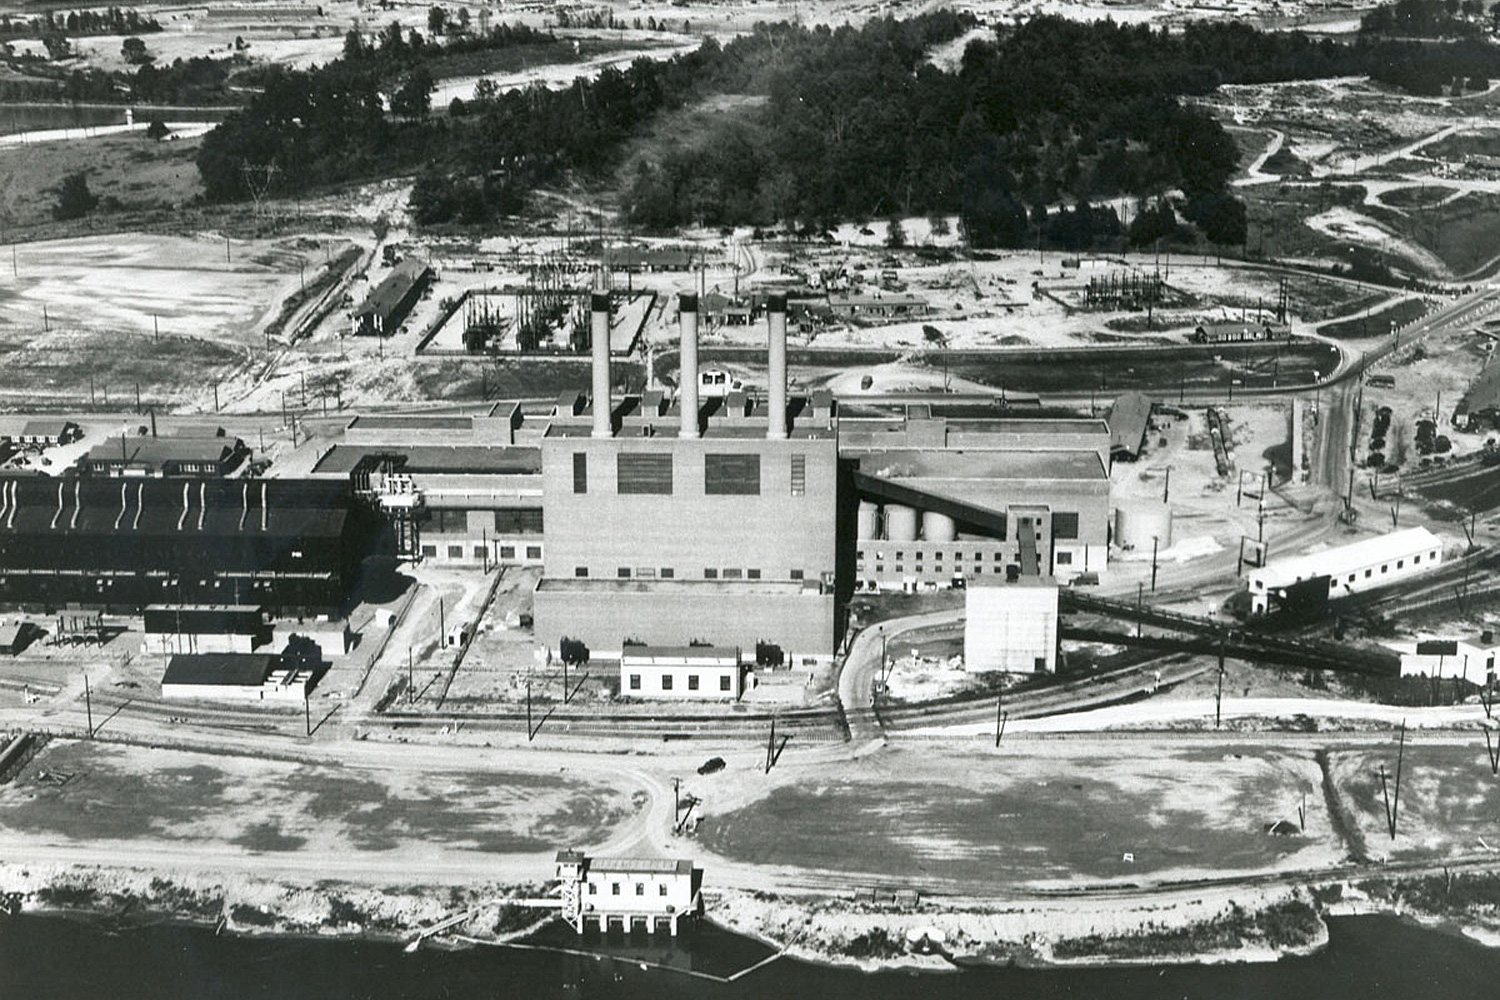 K-25 Powerhouse with S-50 process building to the side